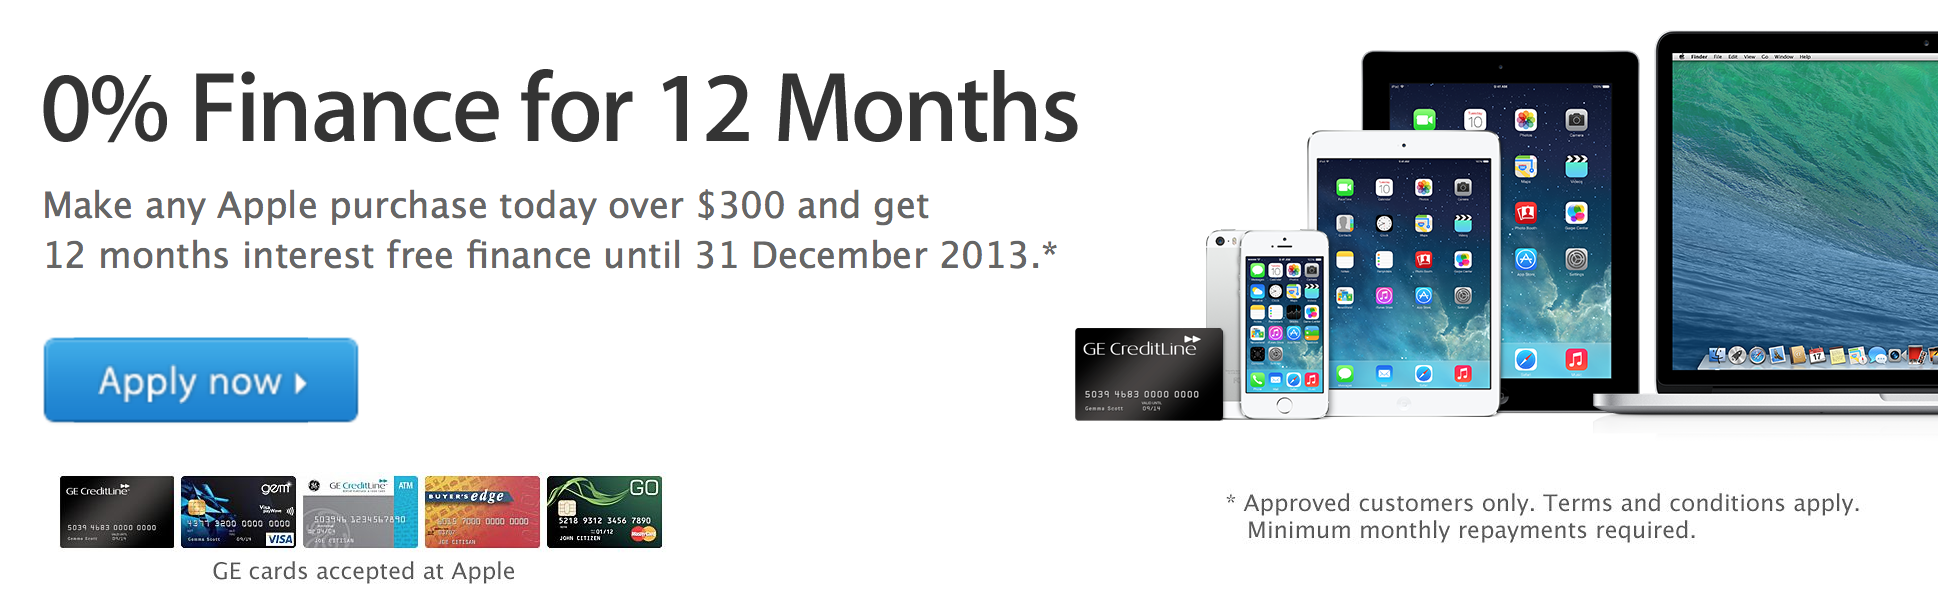 Apple – Offering 12 months interest free to Christmas